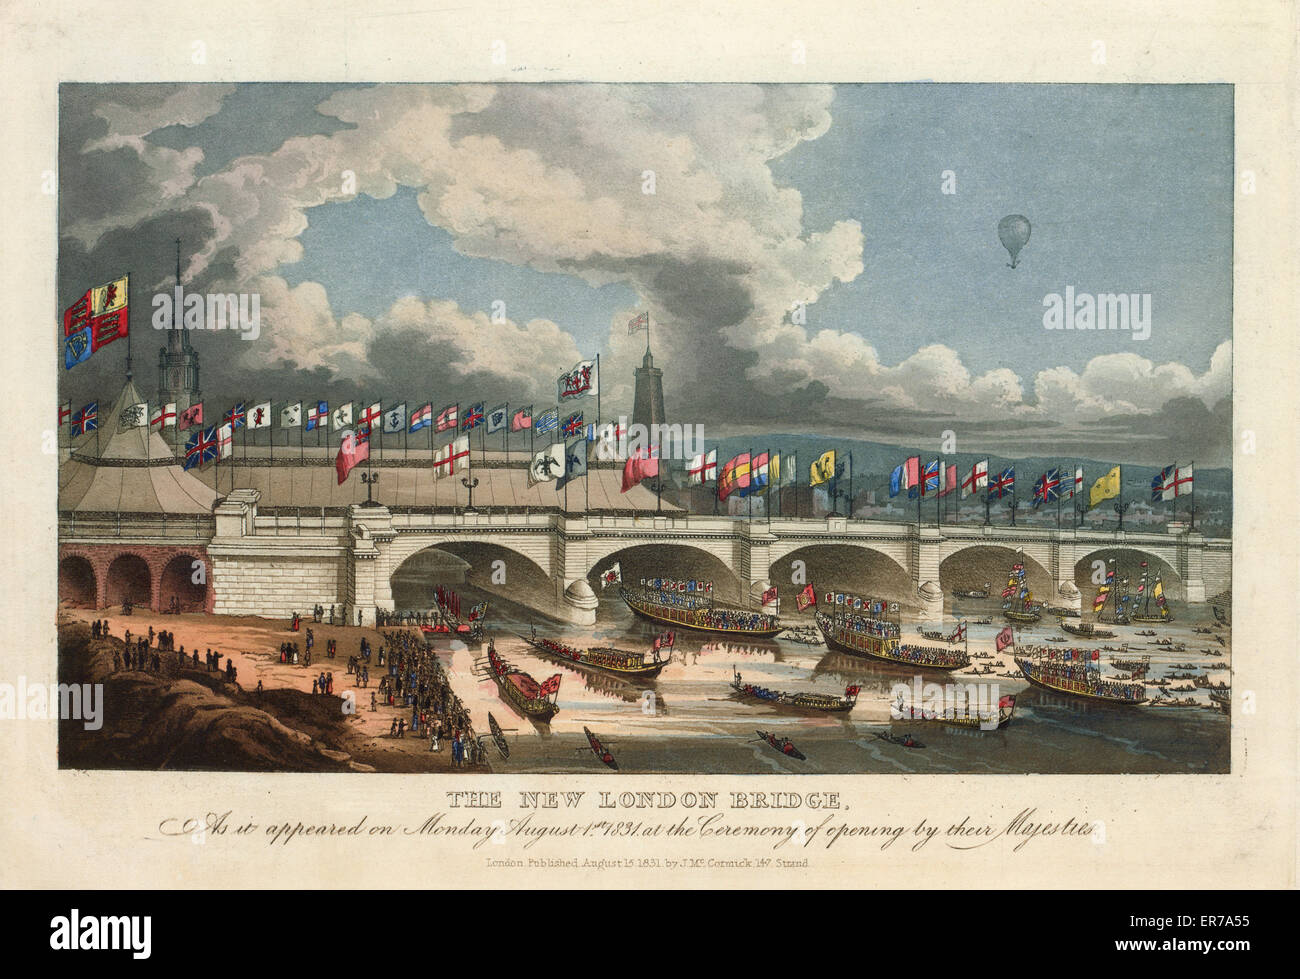 The new London bridge, as it appeared on Monday, August 1st, 1831, at the ceremony of opening by their Majesties. - Stock Image